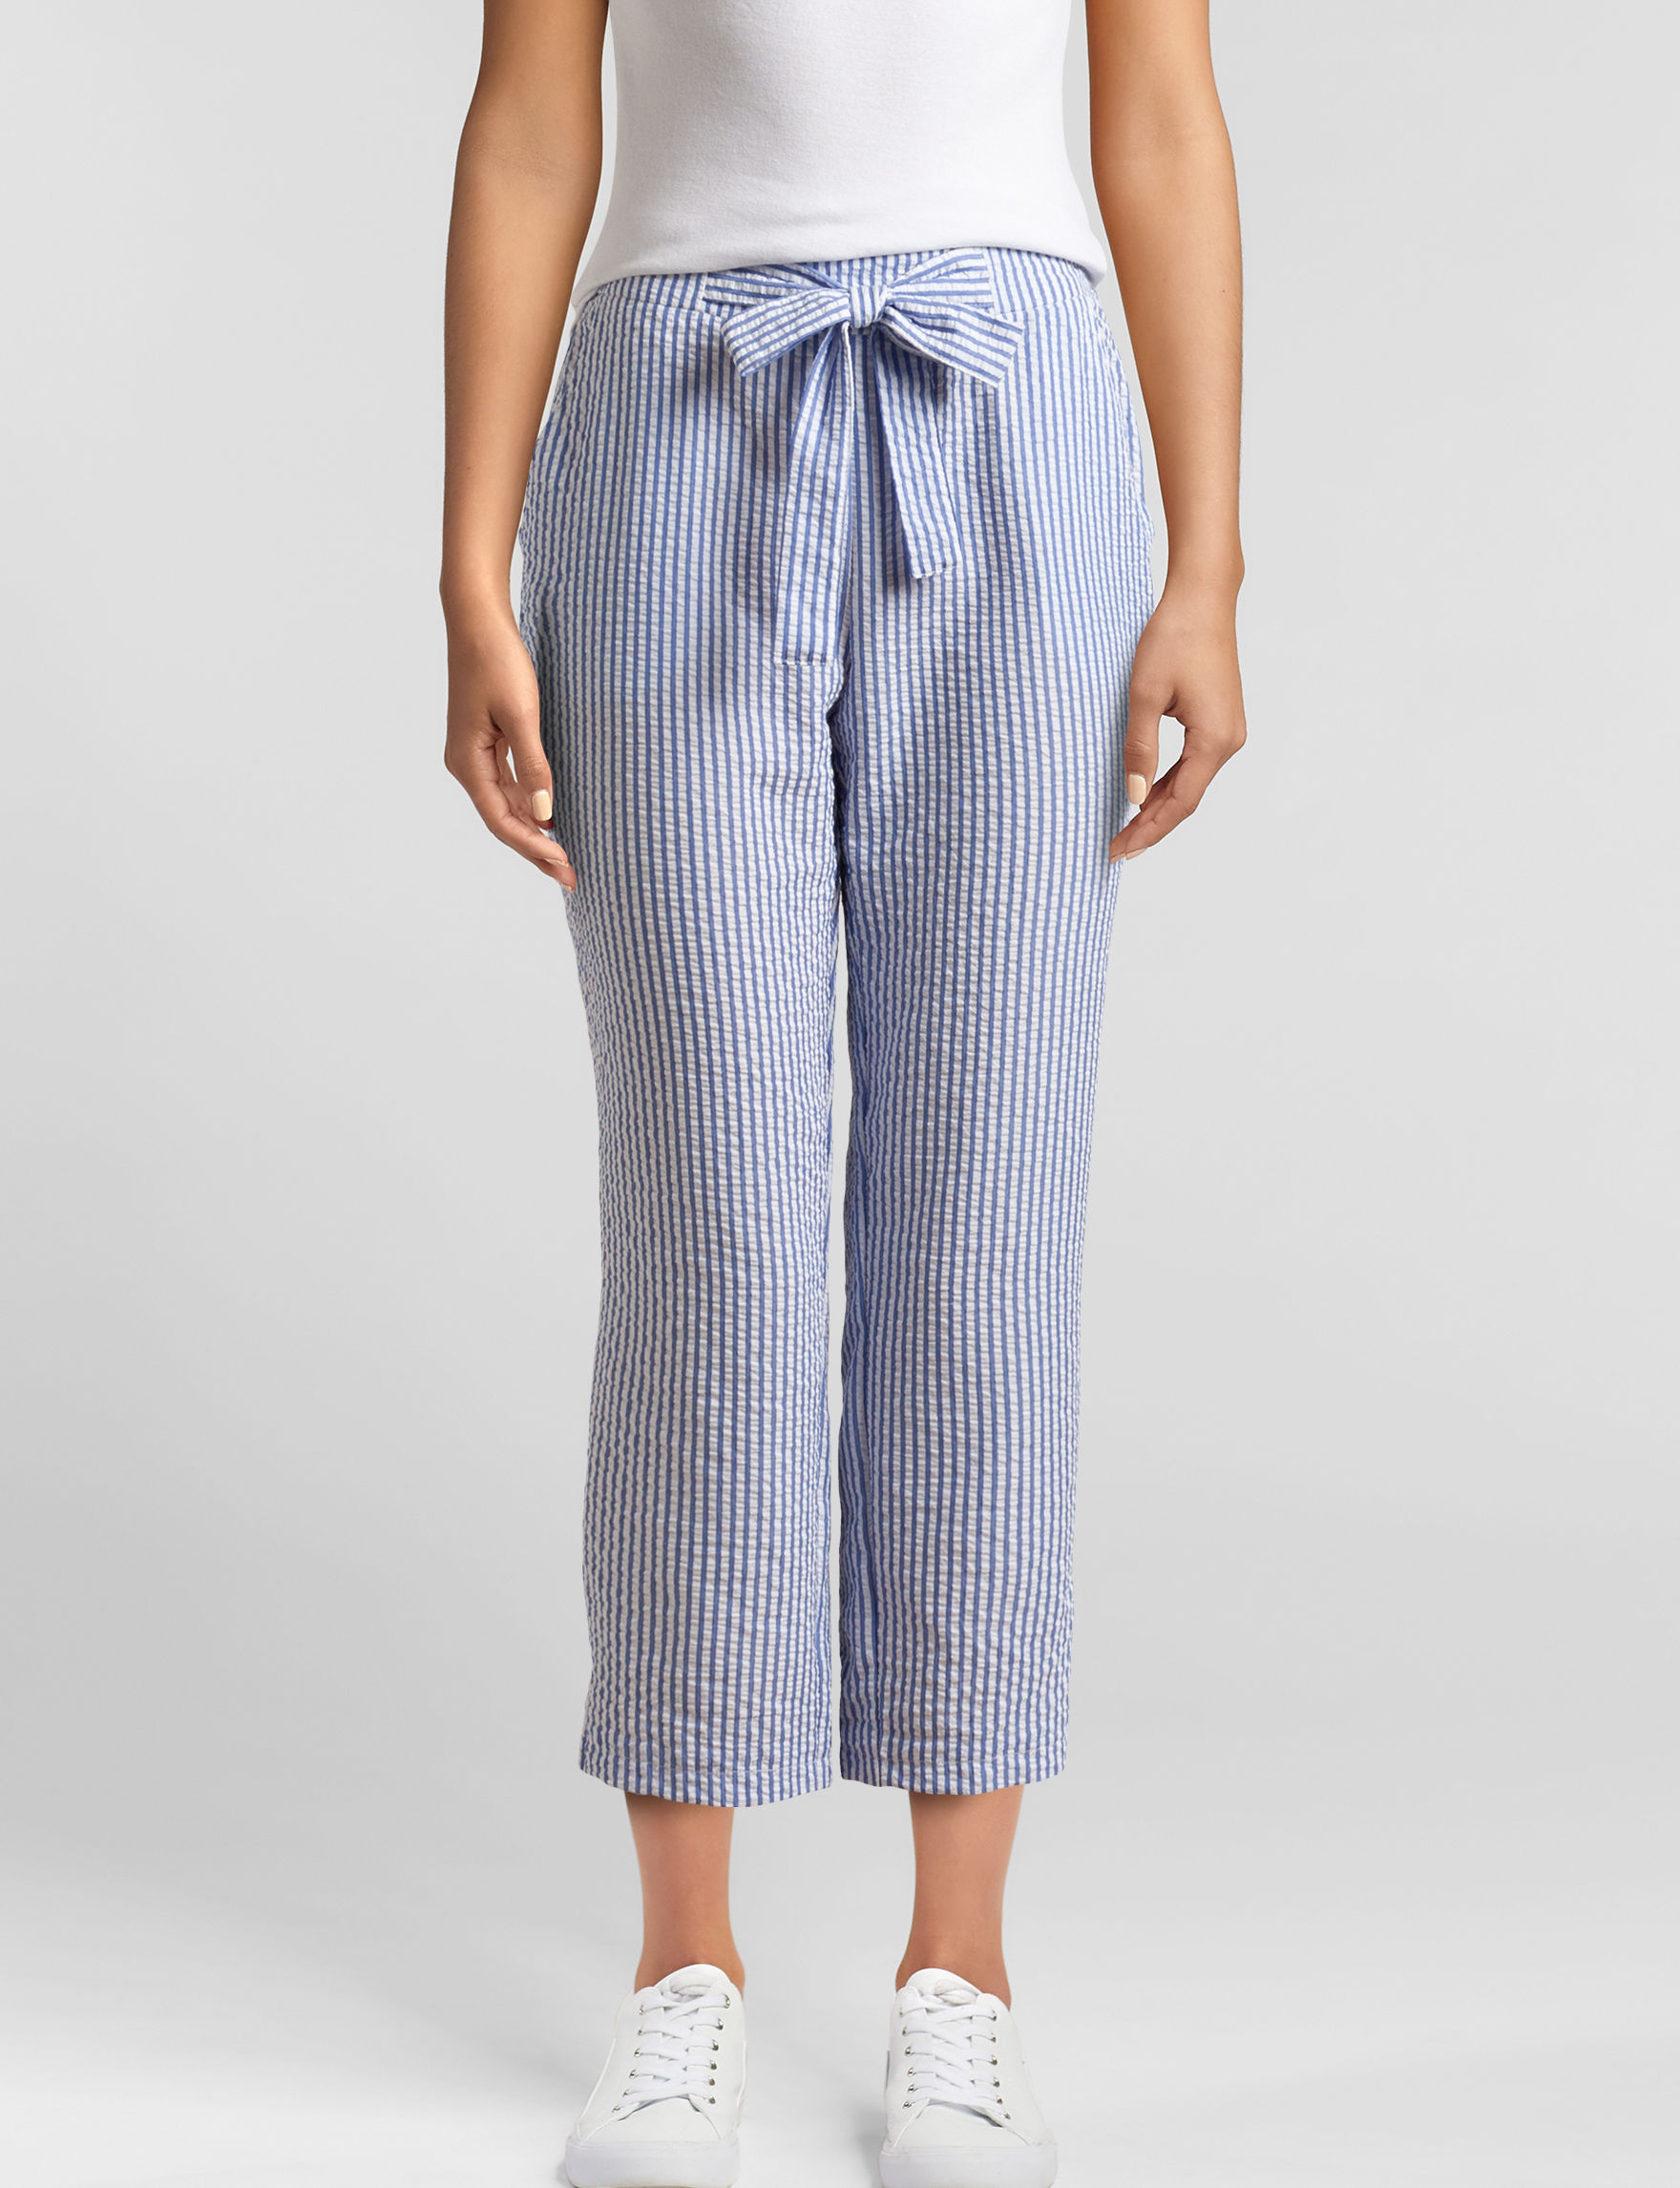 Joe Benbasset White / Blue Capris & Crops